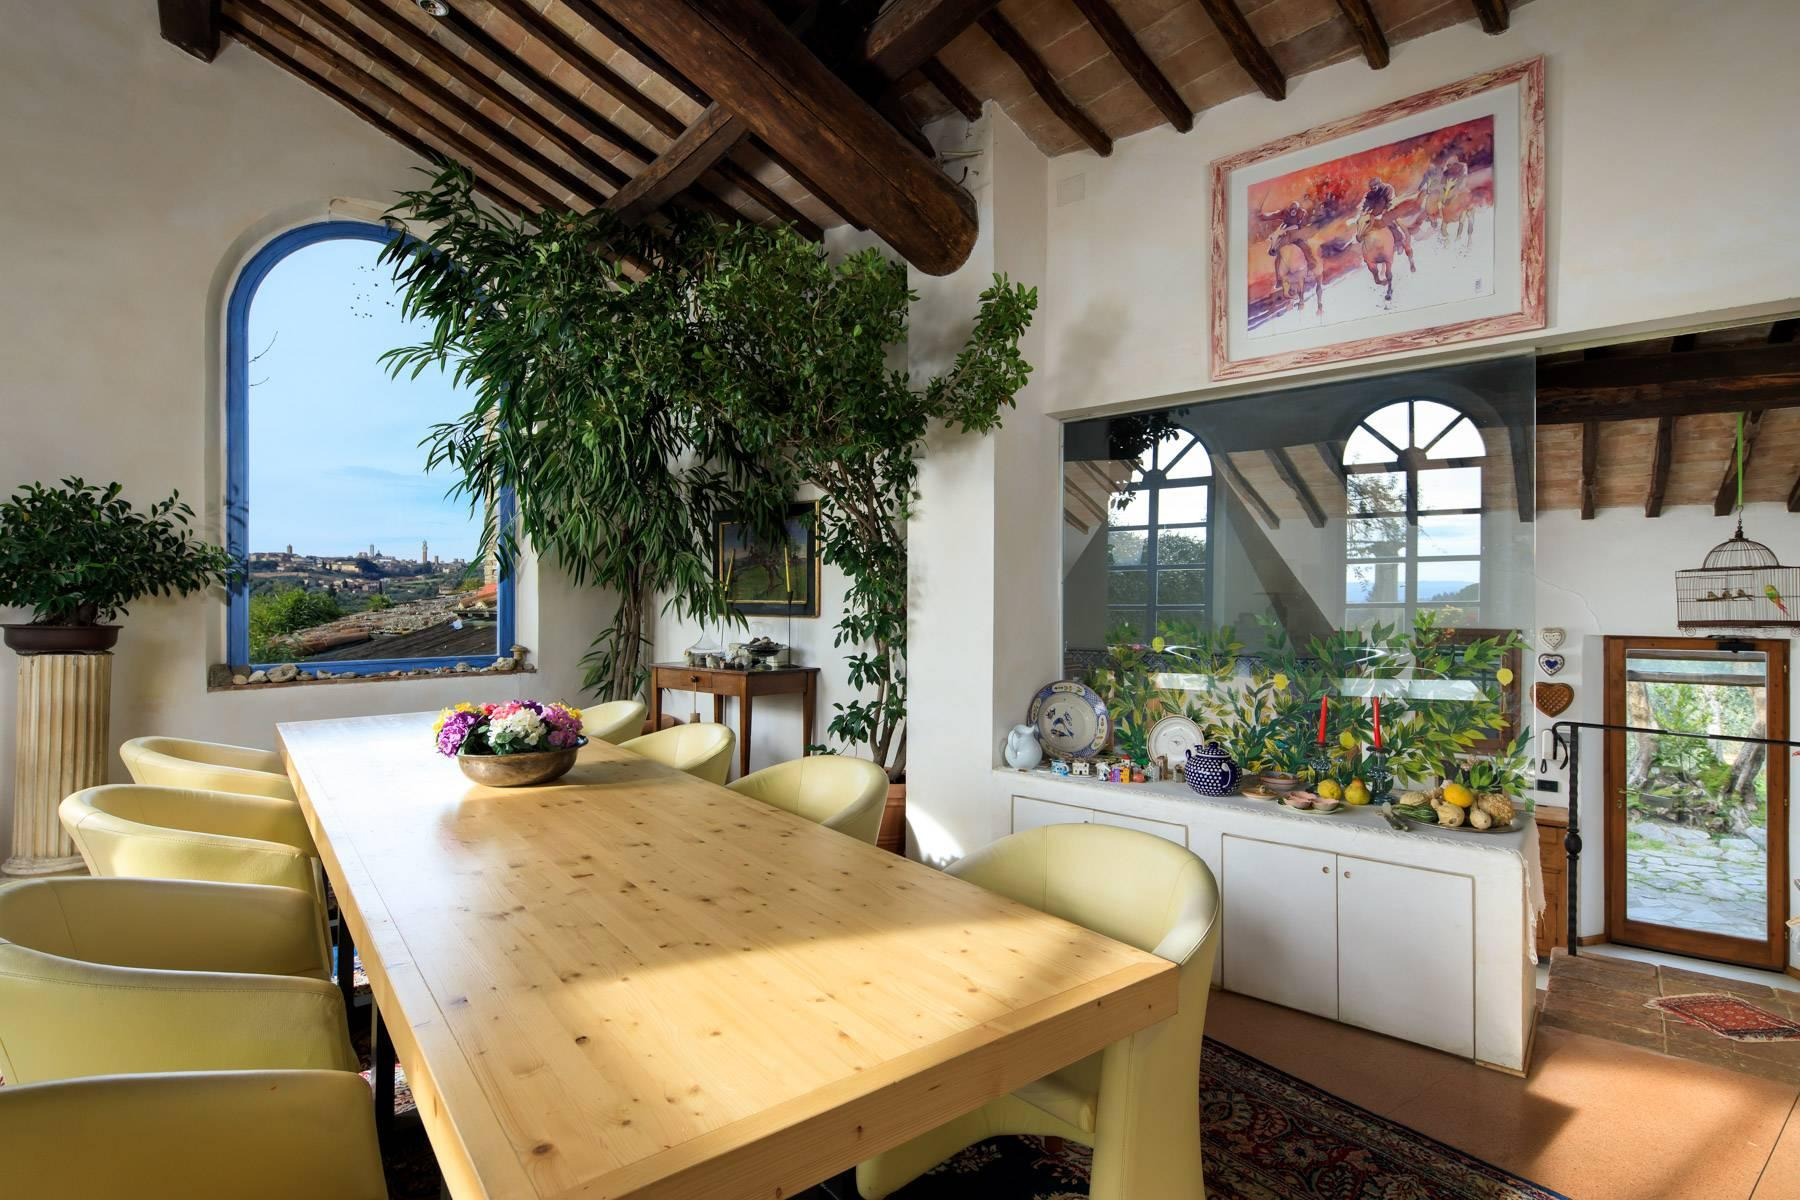 Enchanting farmhouse with agriturismo on the outskirts of Siena - 14